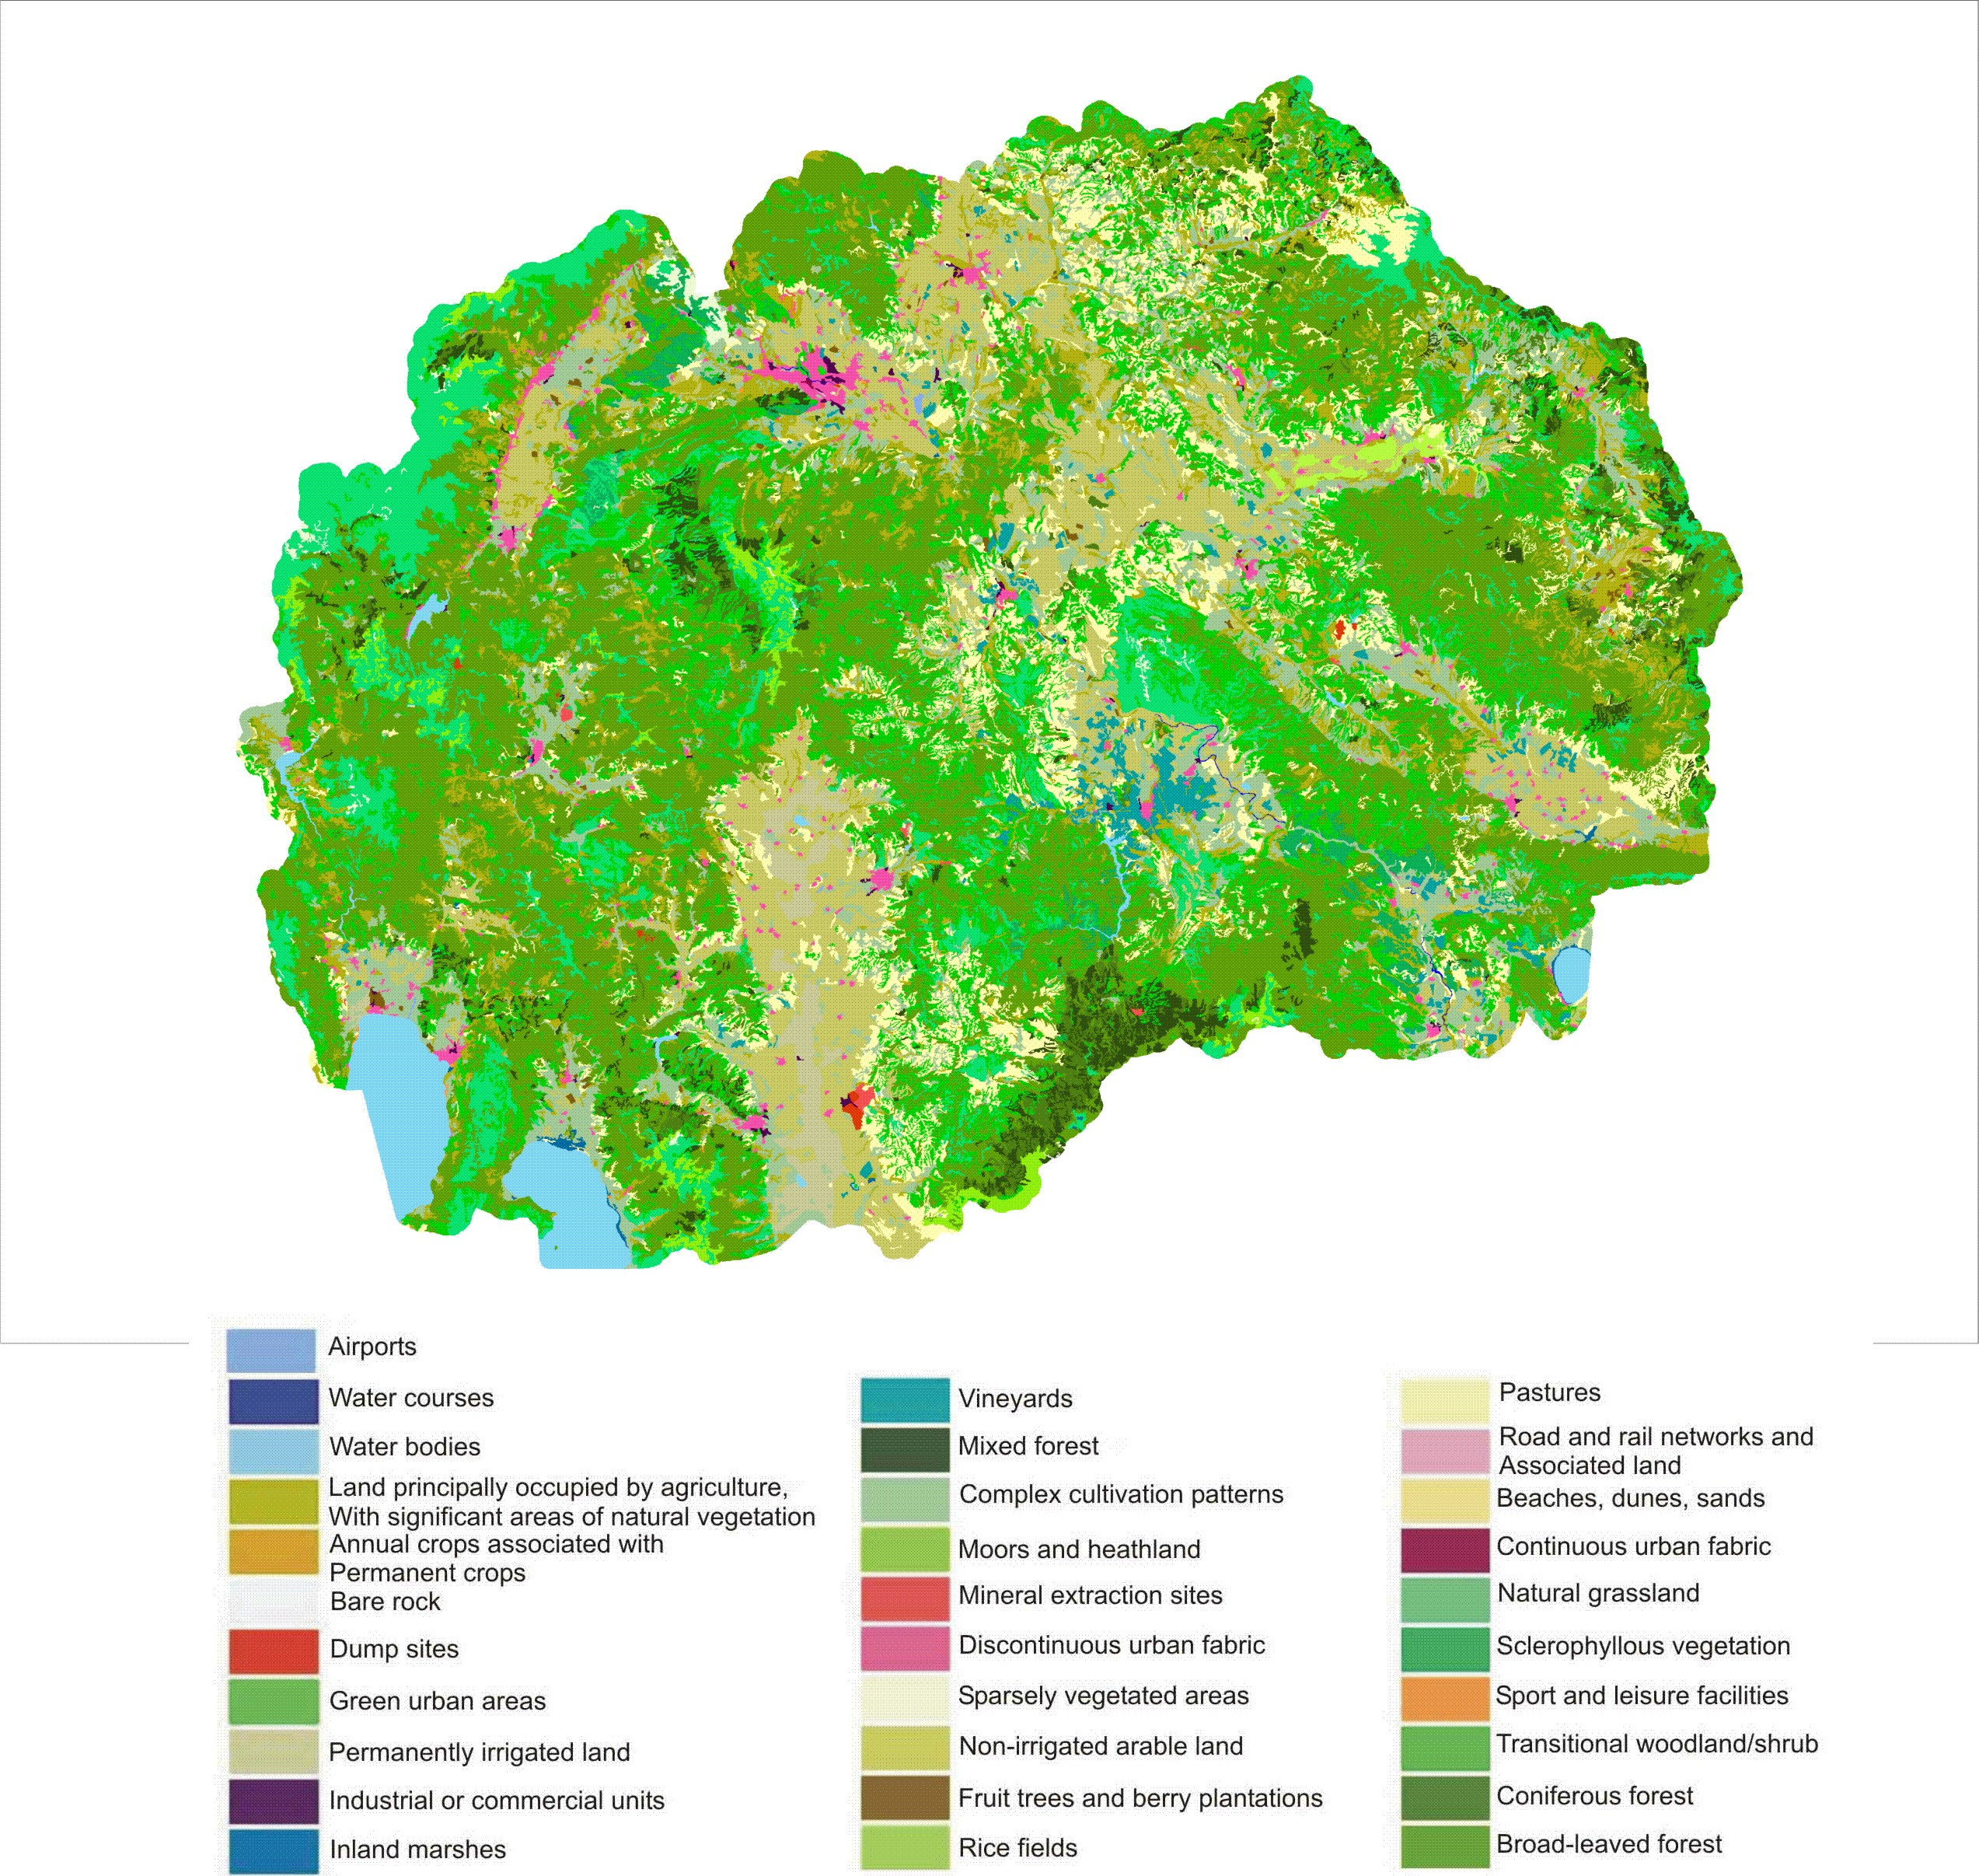 Map 4: Land cover in Republic of Macedonia